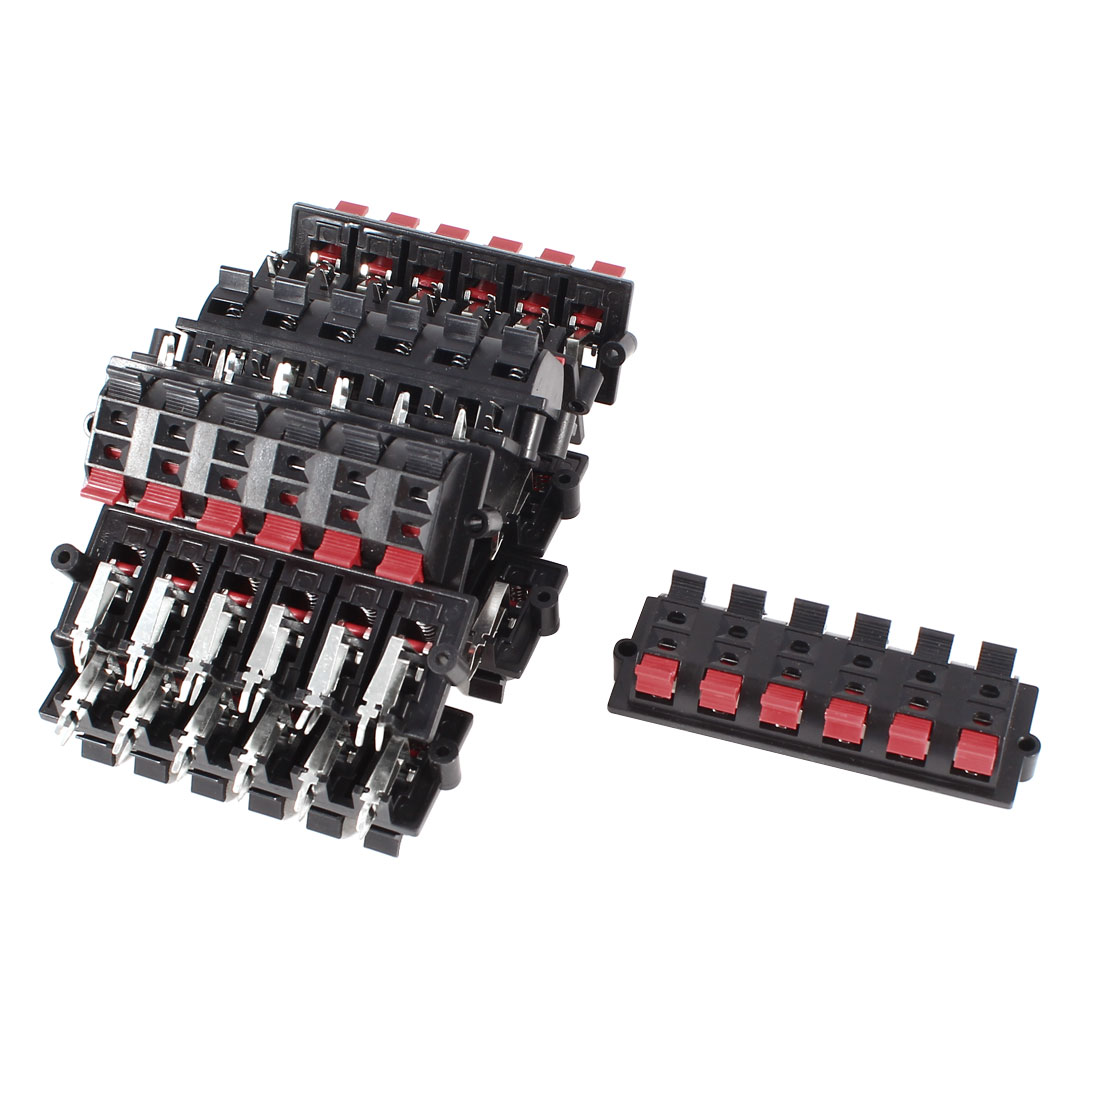 10 Pcs 12 Way Spring Loaded Speaker Terminals Board Connector 90x30mm